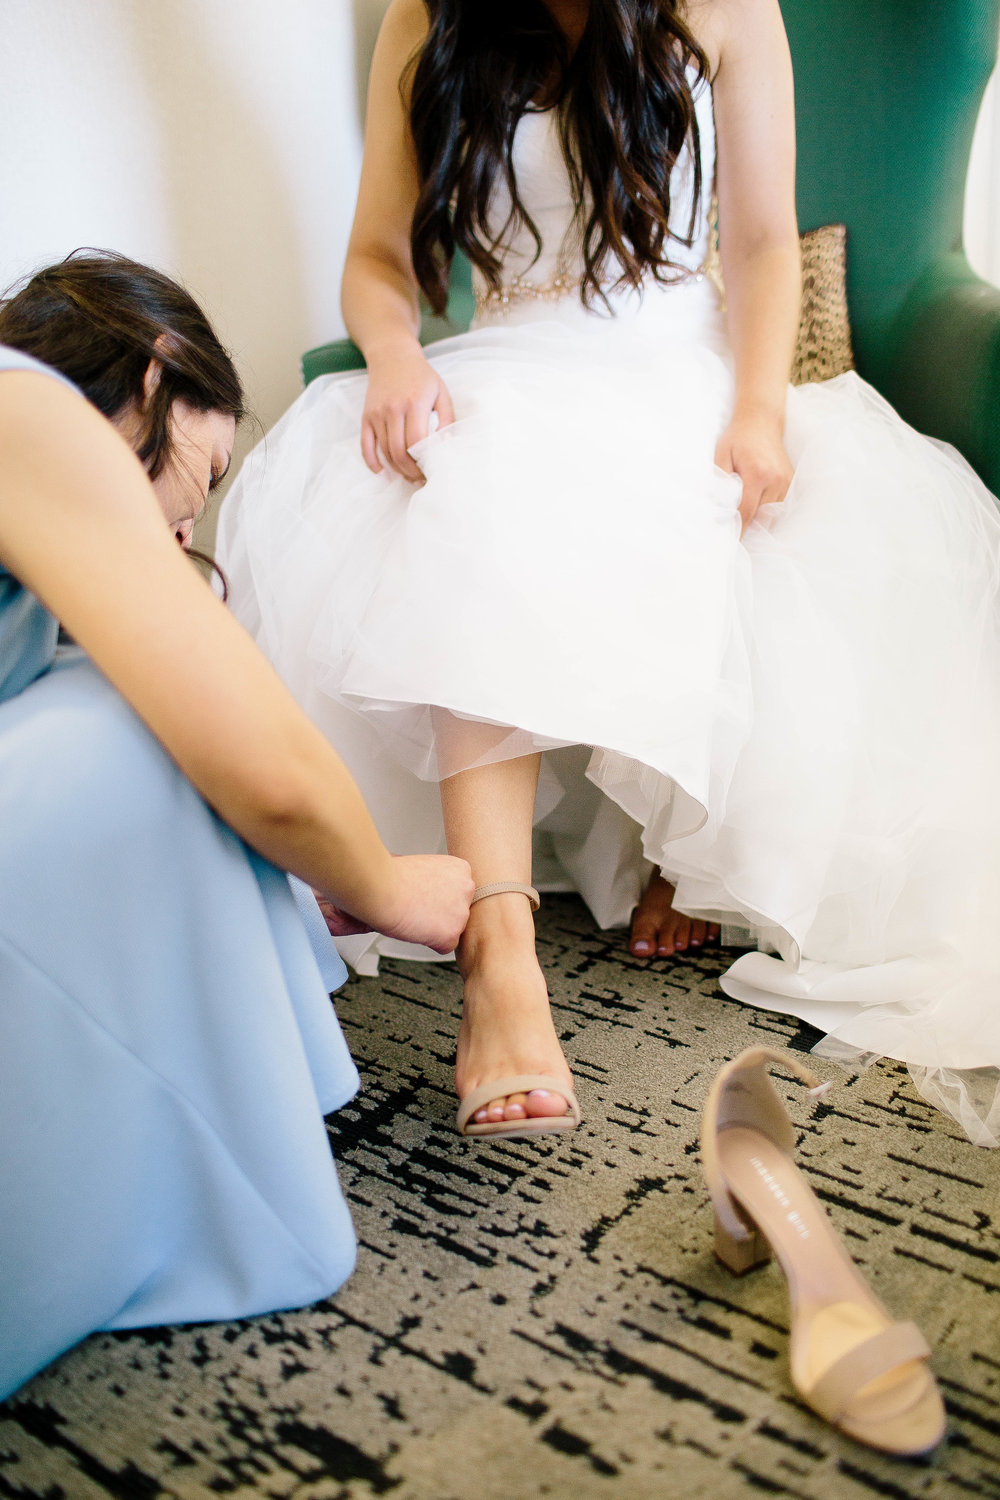 Boise Wedding Photographer- Nampa Wedding Photographer- The Grove Boise- Getting Ready Photos- Getting Ready Photo Ideas- Wedding Photo Ideas- Wedding Ideas-